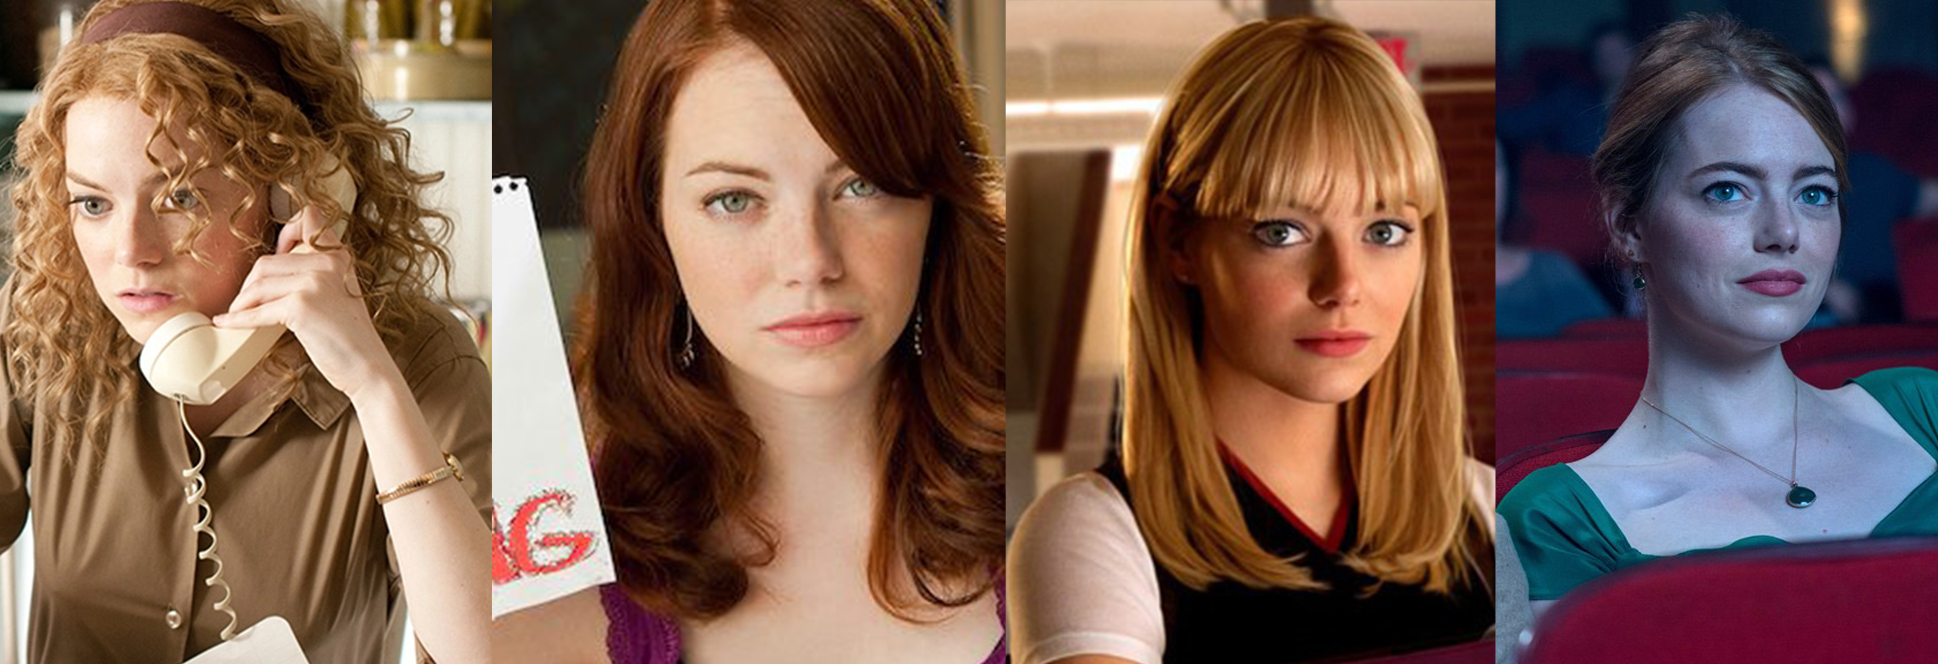 Heres how Emma Stone gained 15 pounds of pure muscle for her latest role